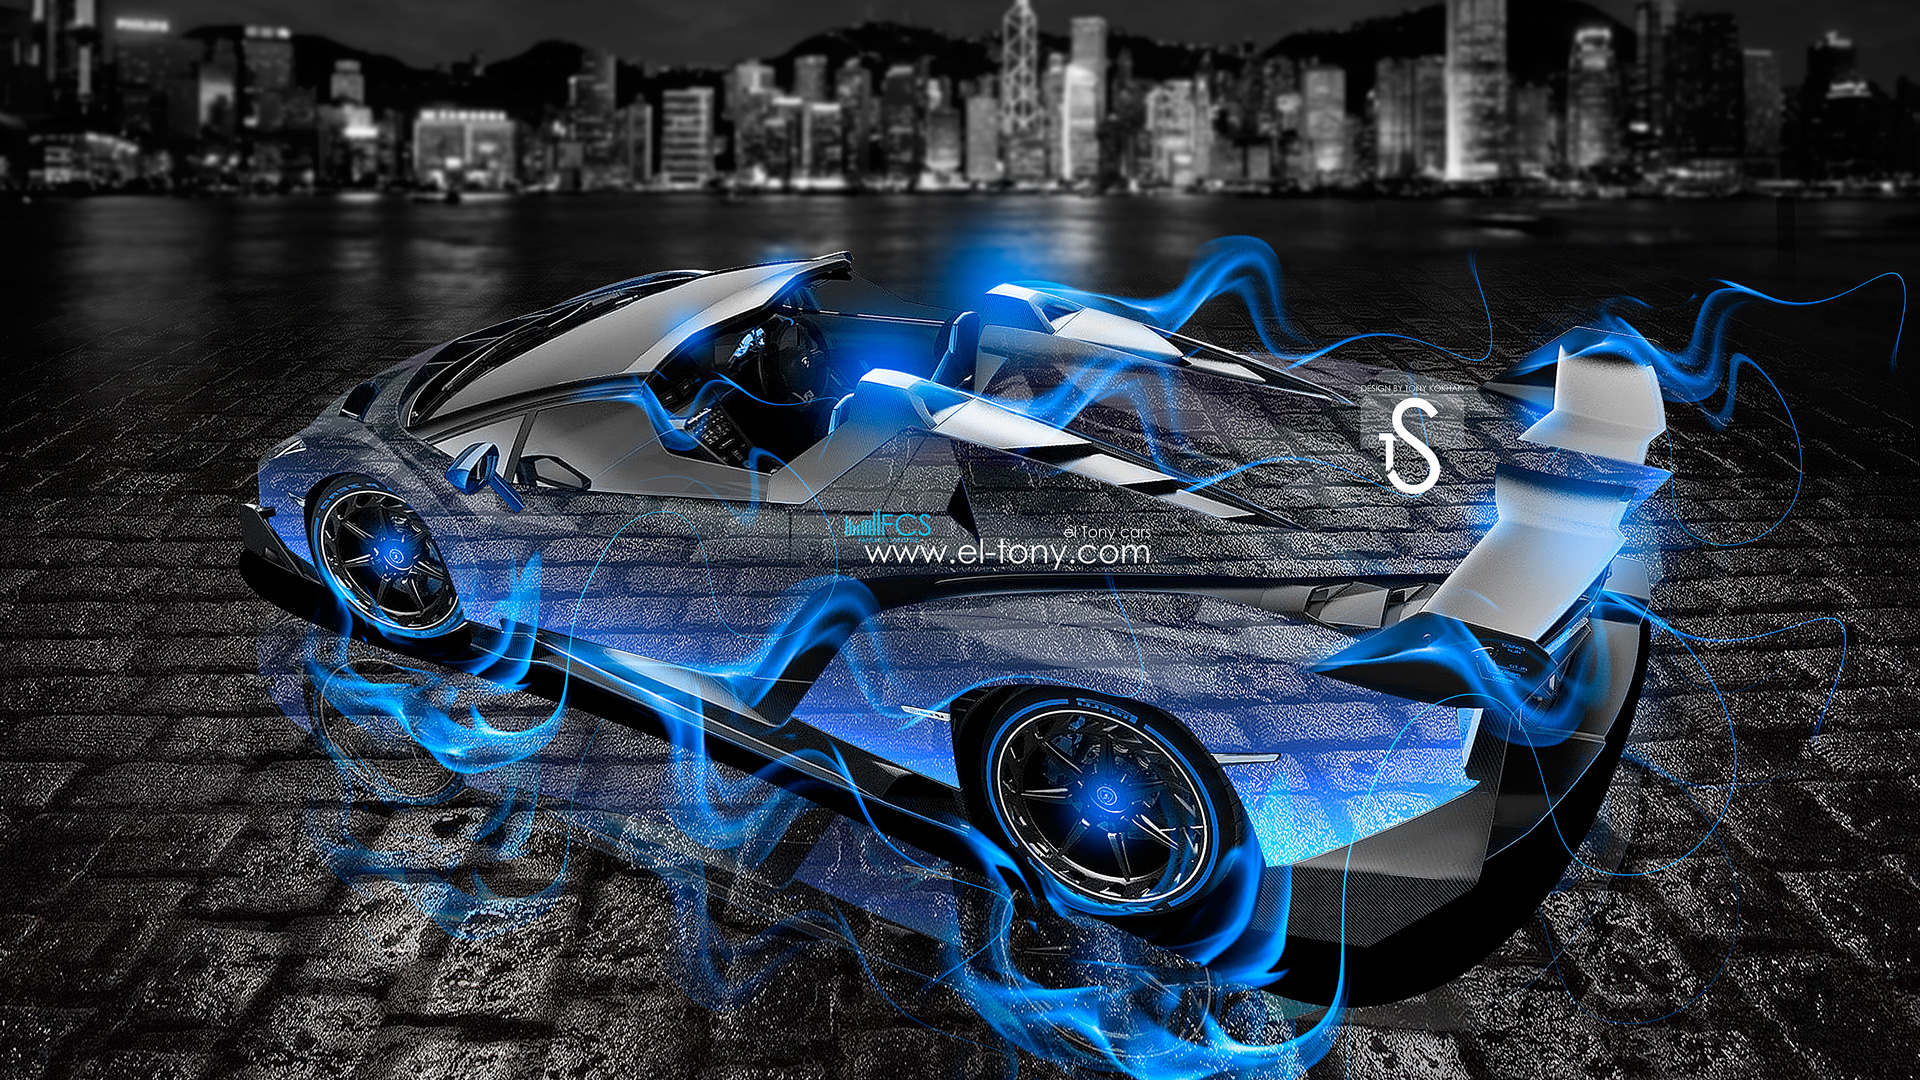 Merveilleux Lamborghini Veneno Roadster Blue Fire City Crystal Car